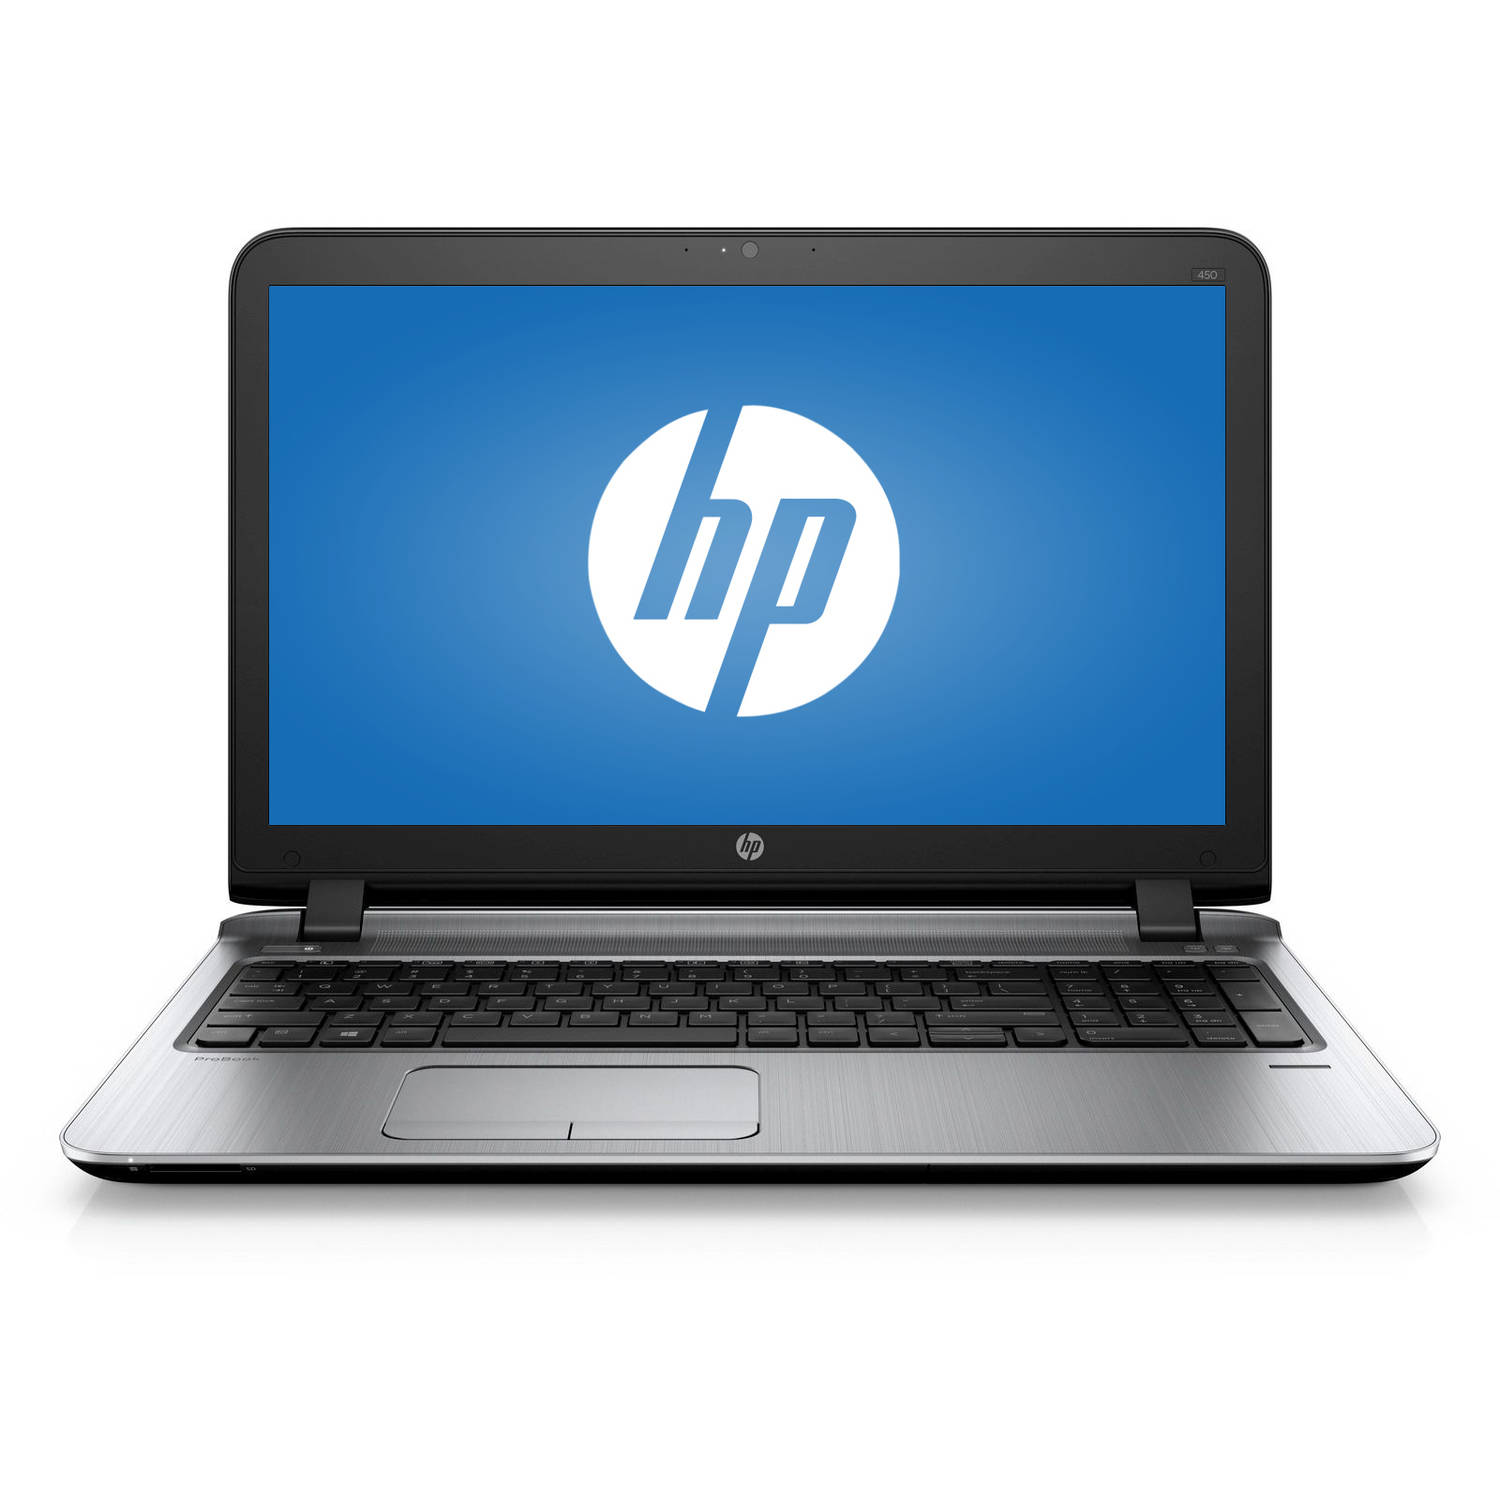 "HP Business 15.6"" ProBook 450 G3 T1B70UT Laptop PC with Intel Core i5-6200U Processor, 8GB Memory, 500GB Hard Drive and Windows 7 Professional"